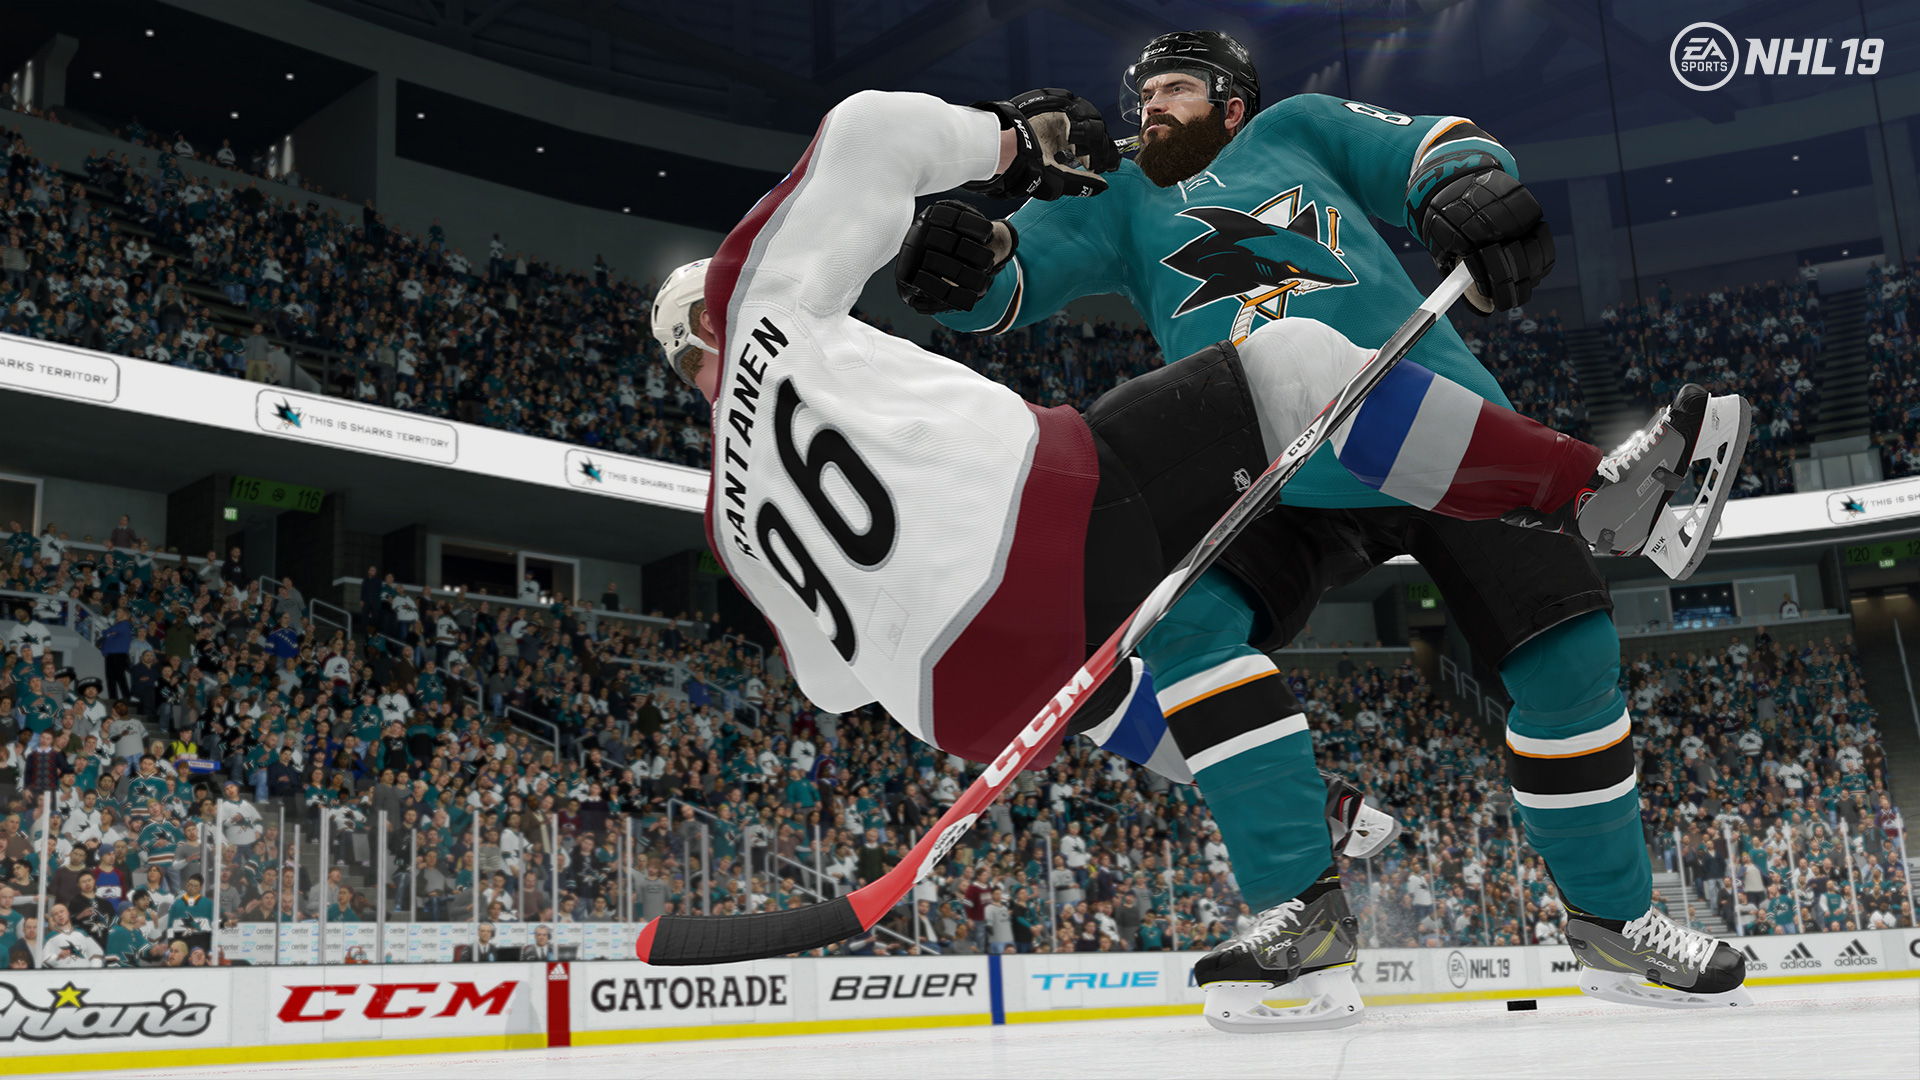 Nhl 19 wallpapers in ultra hd 4k gameranx - Nhl hockey wallpapers ...